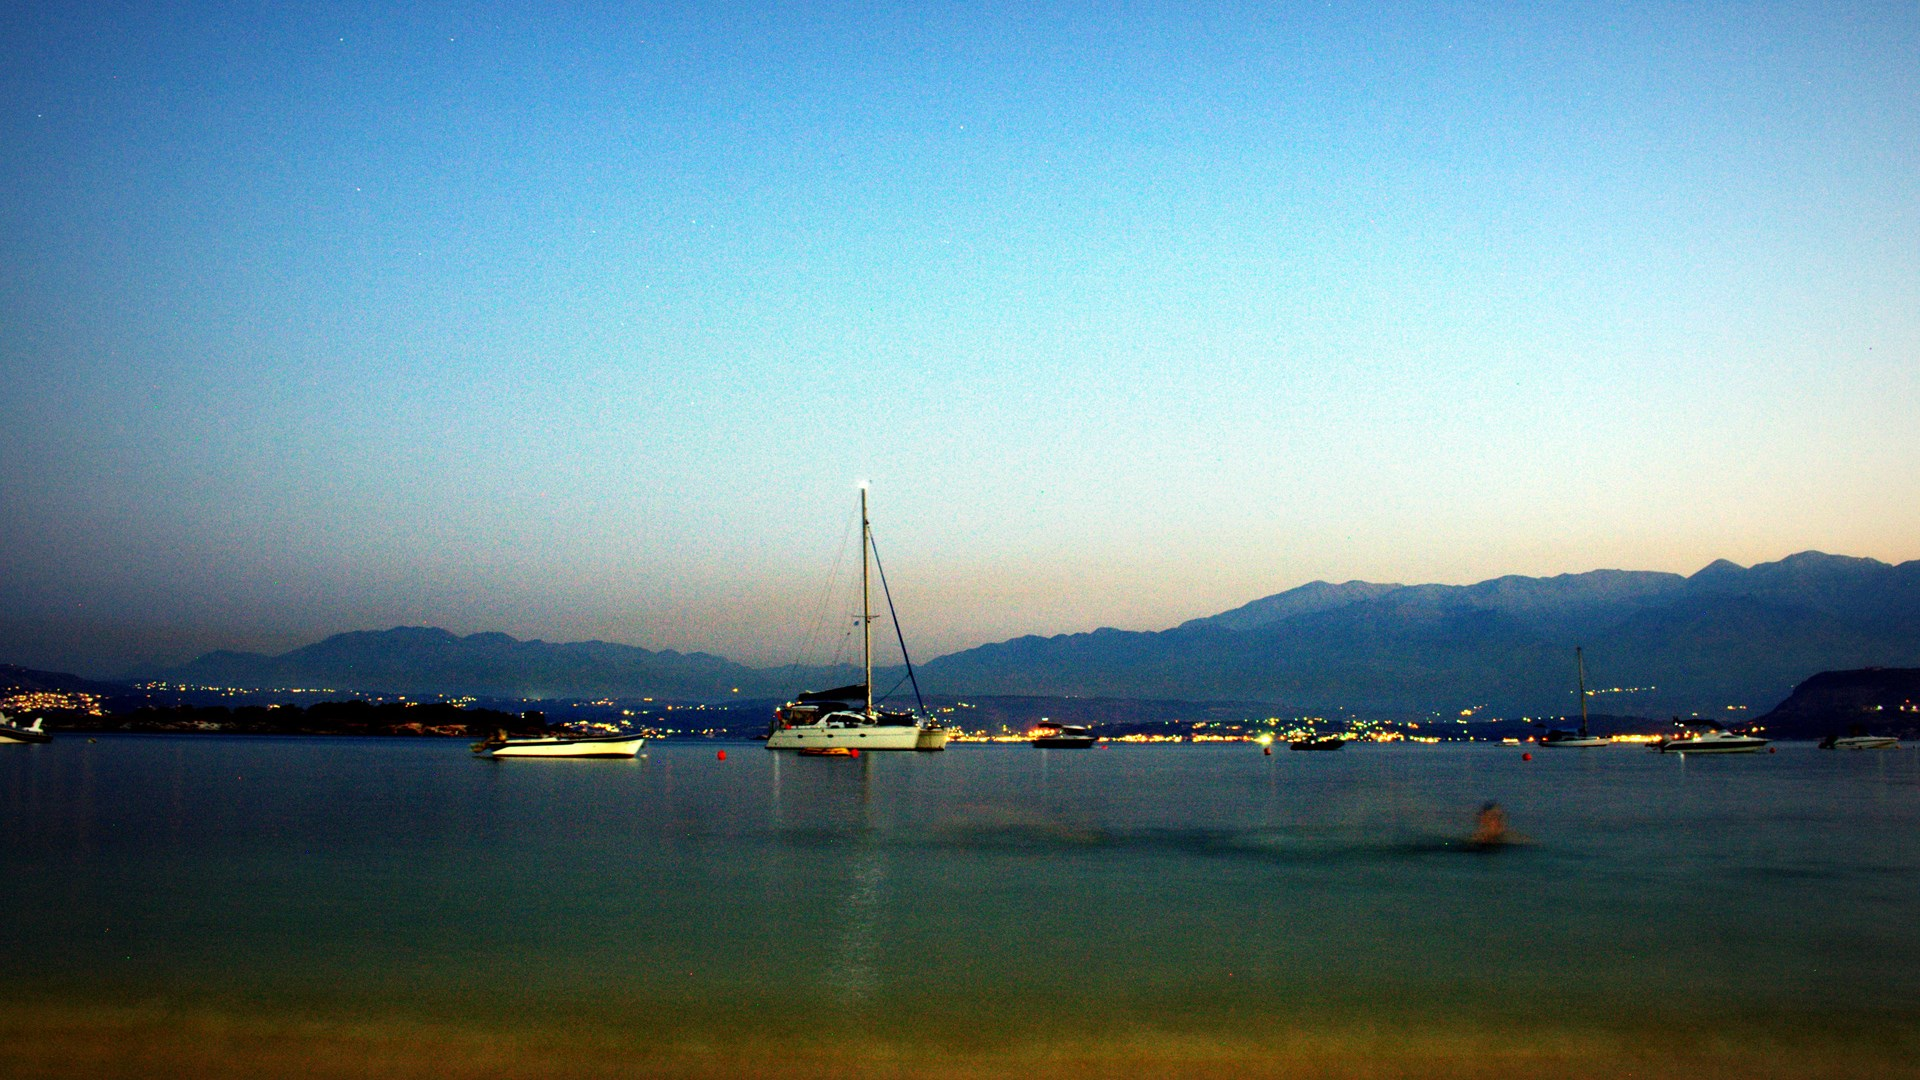 Marathi Beach, Chania – Crete | 13 Aug 2014  | Alargo